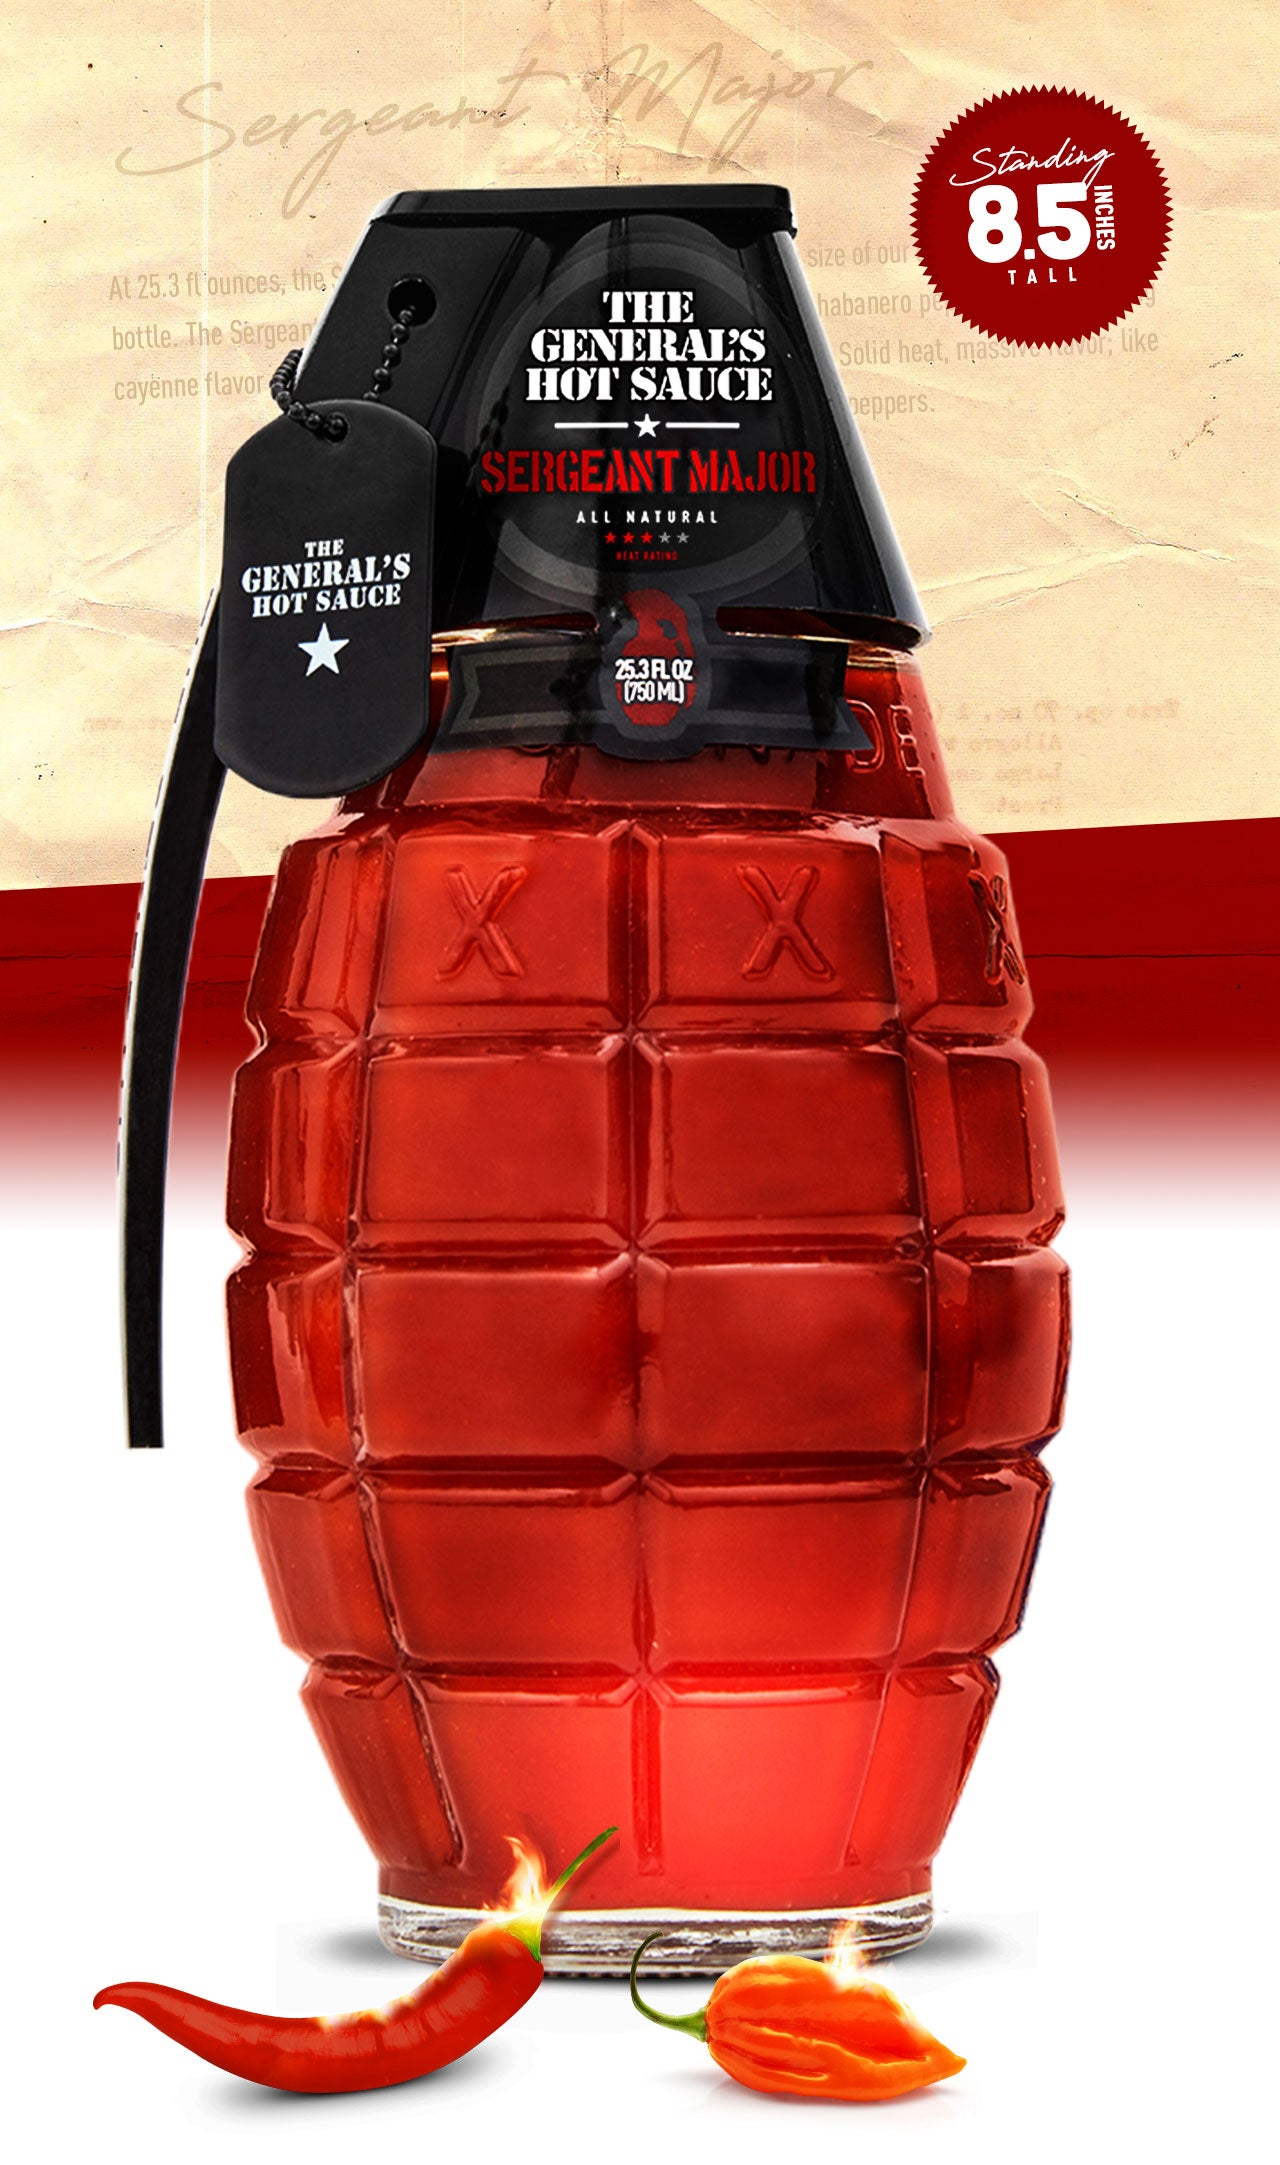 Sergeant Major big bottle - 750 ml